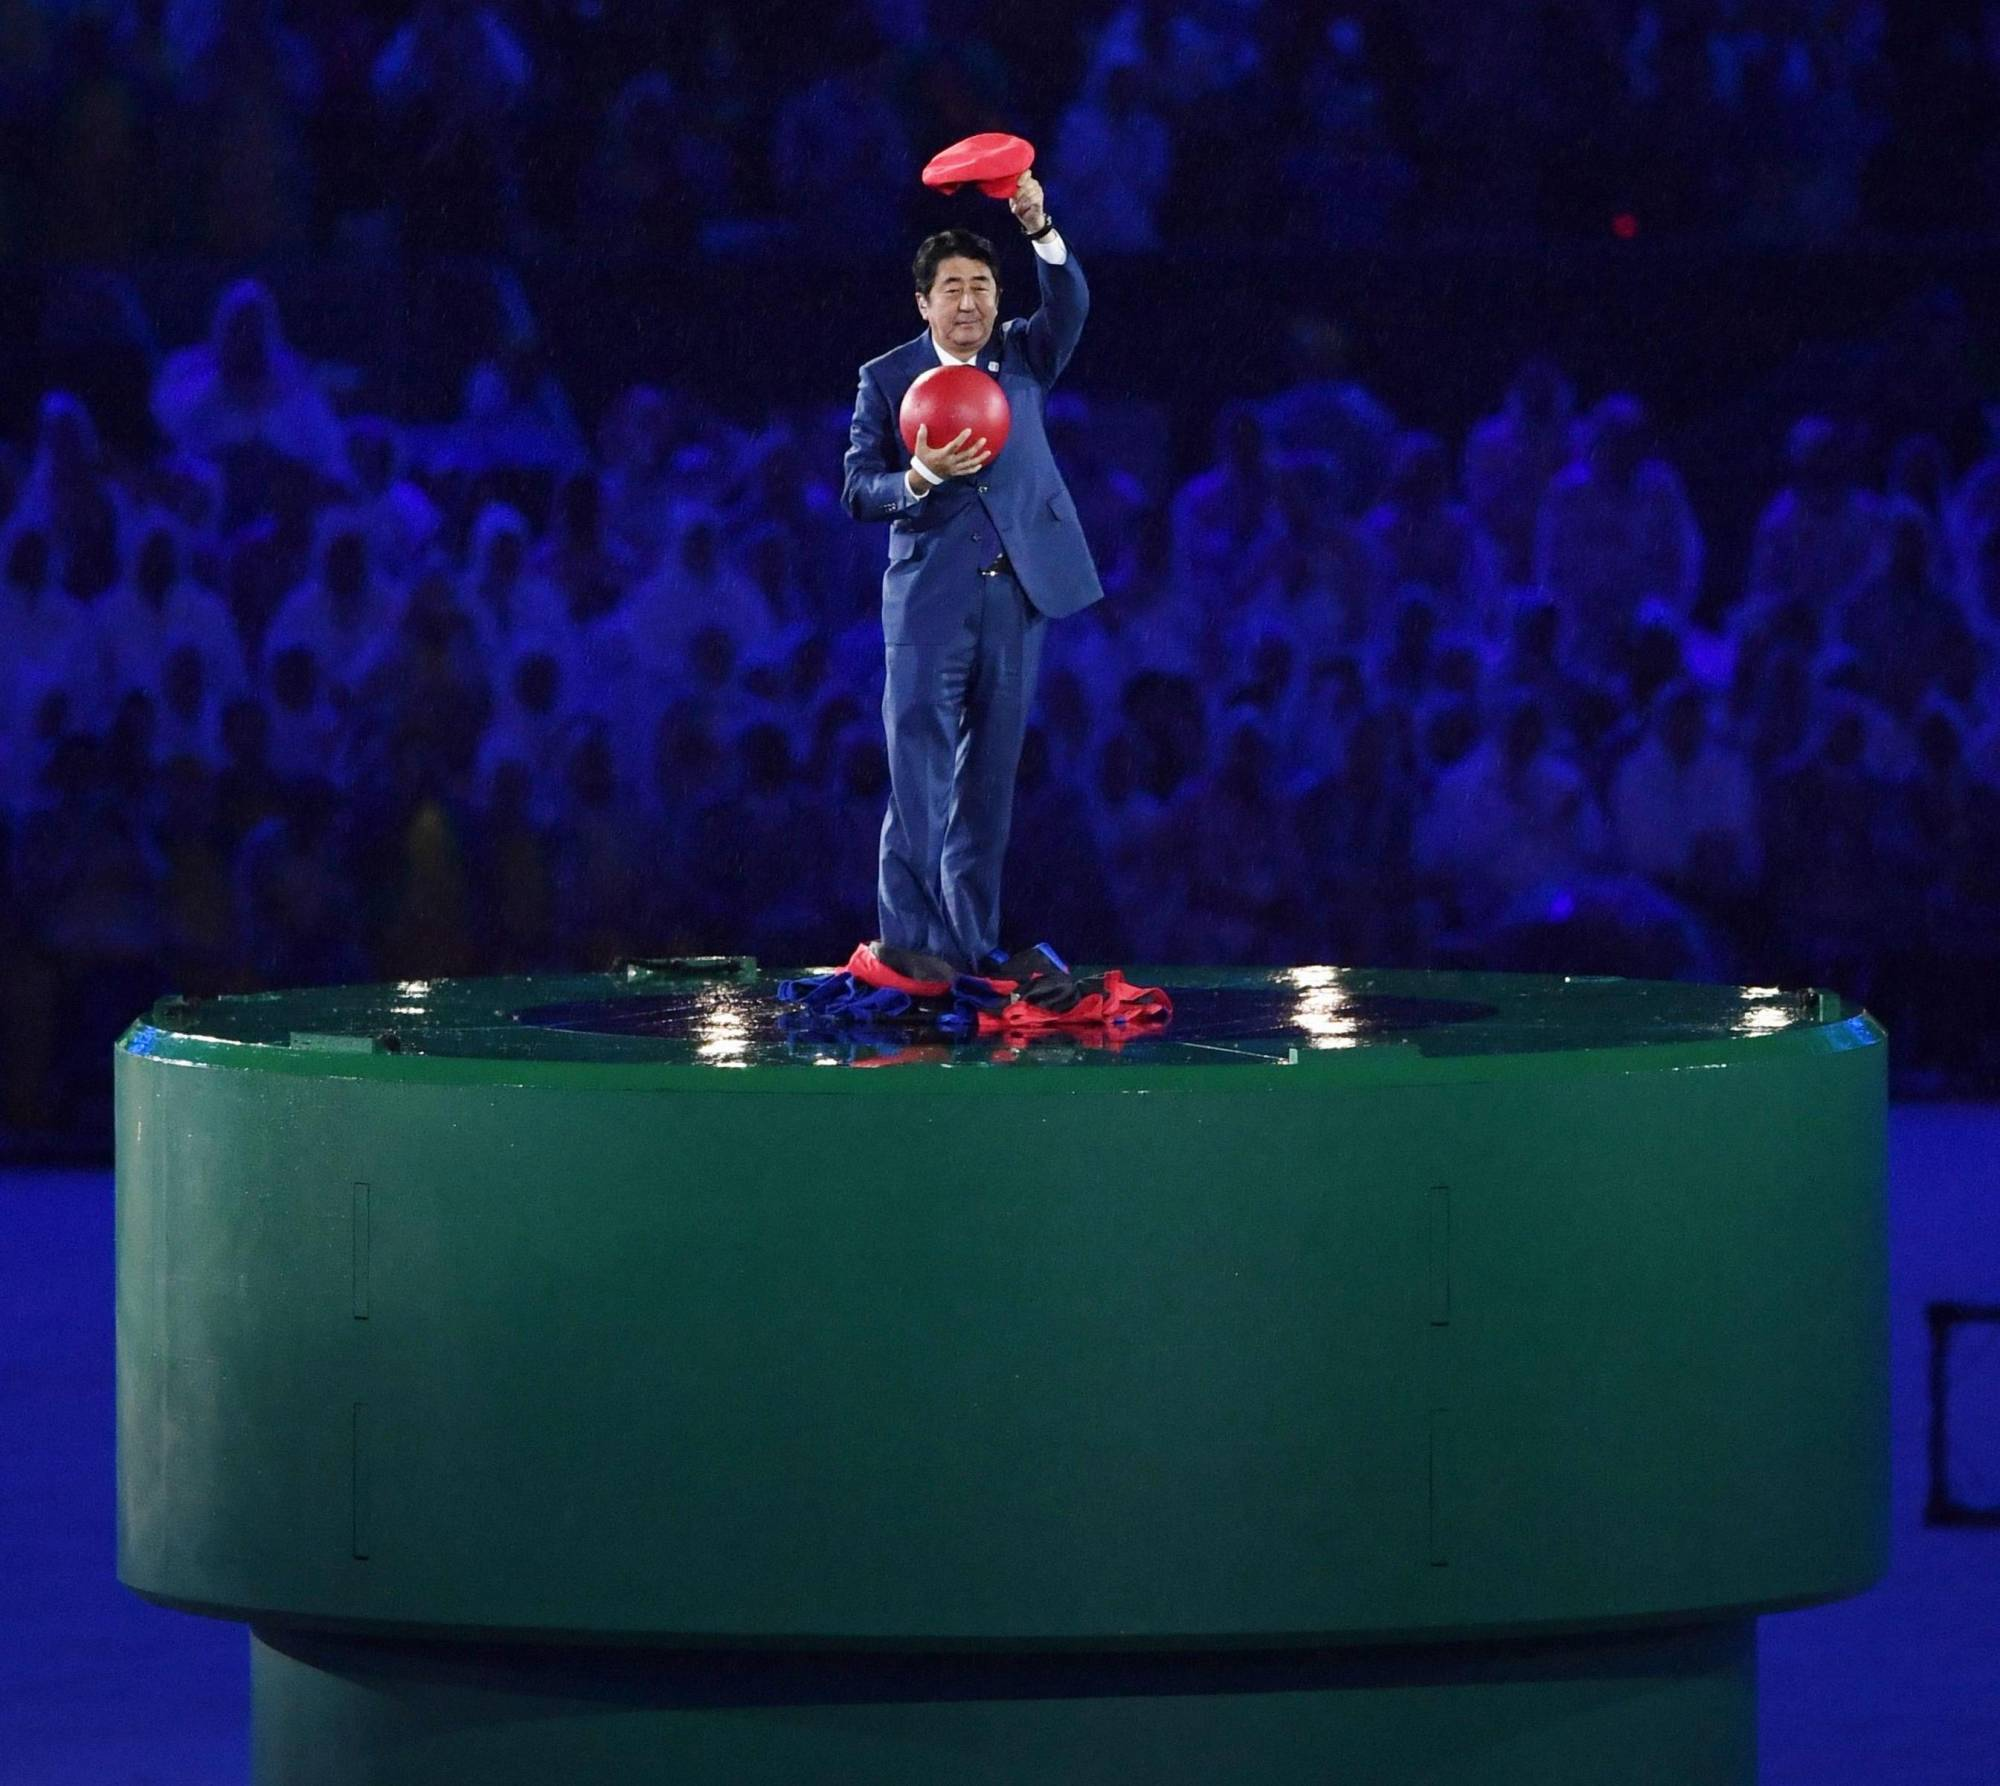 Full of surprises: Will the Tokyo Olympics opening ceremony have moments as meme-worthy as then-Prime Minister Shinzo Abe's appearance as video game character Mario at the Rio 2016 closing ceremony?   KYODO